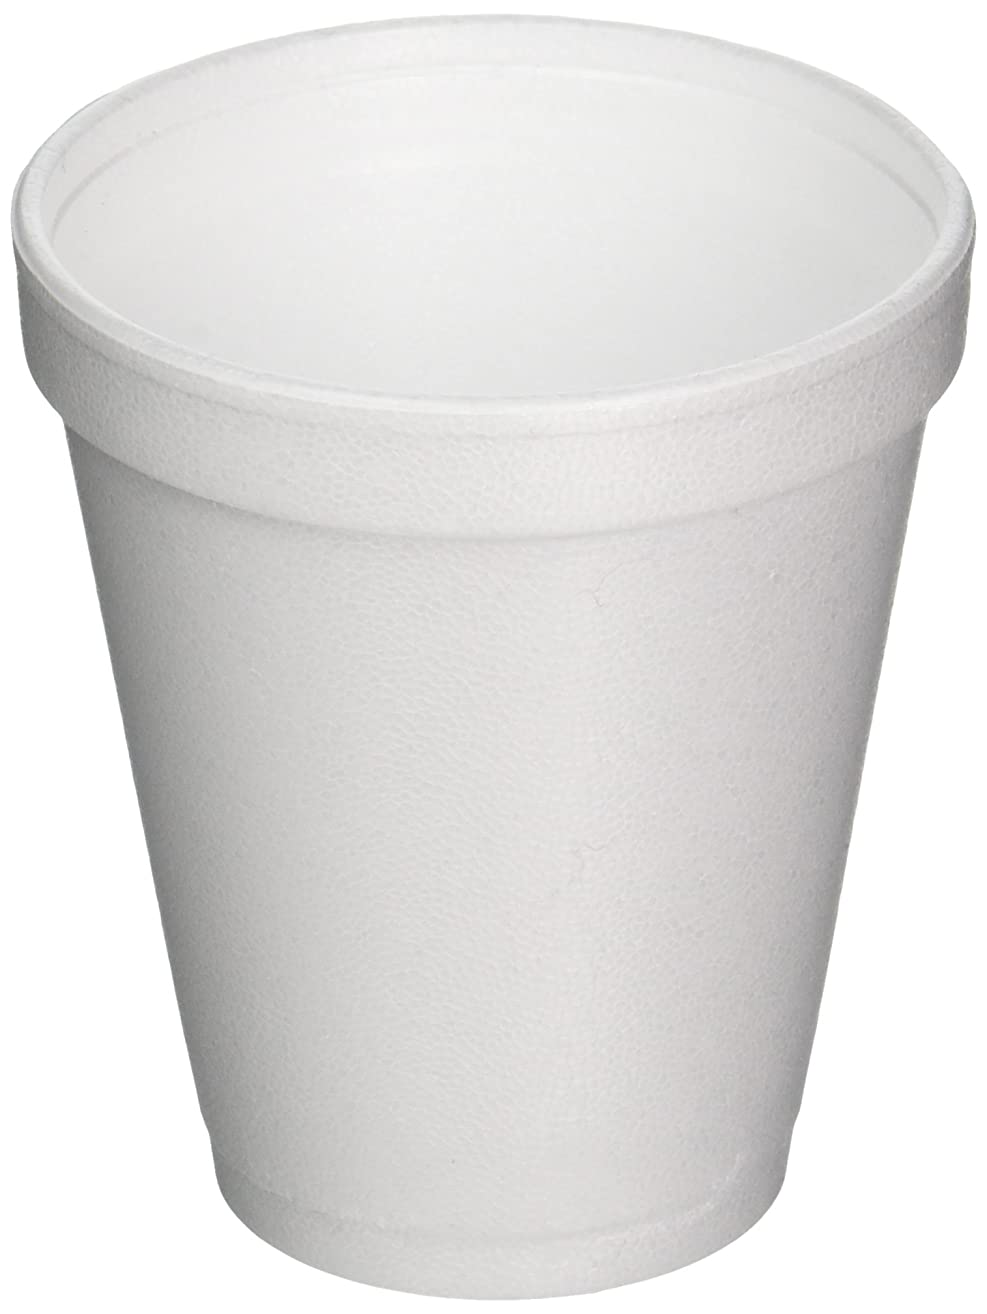 DART CONTAINER J-Style Styrofoam Drink Cups (1000 Per Case), White, 8 oz